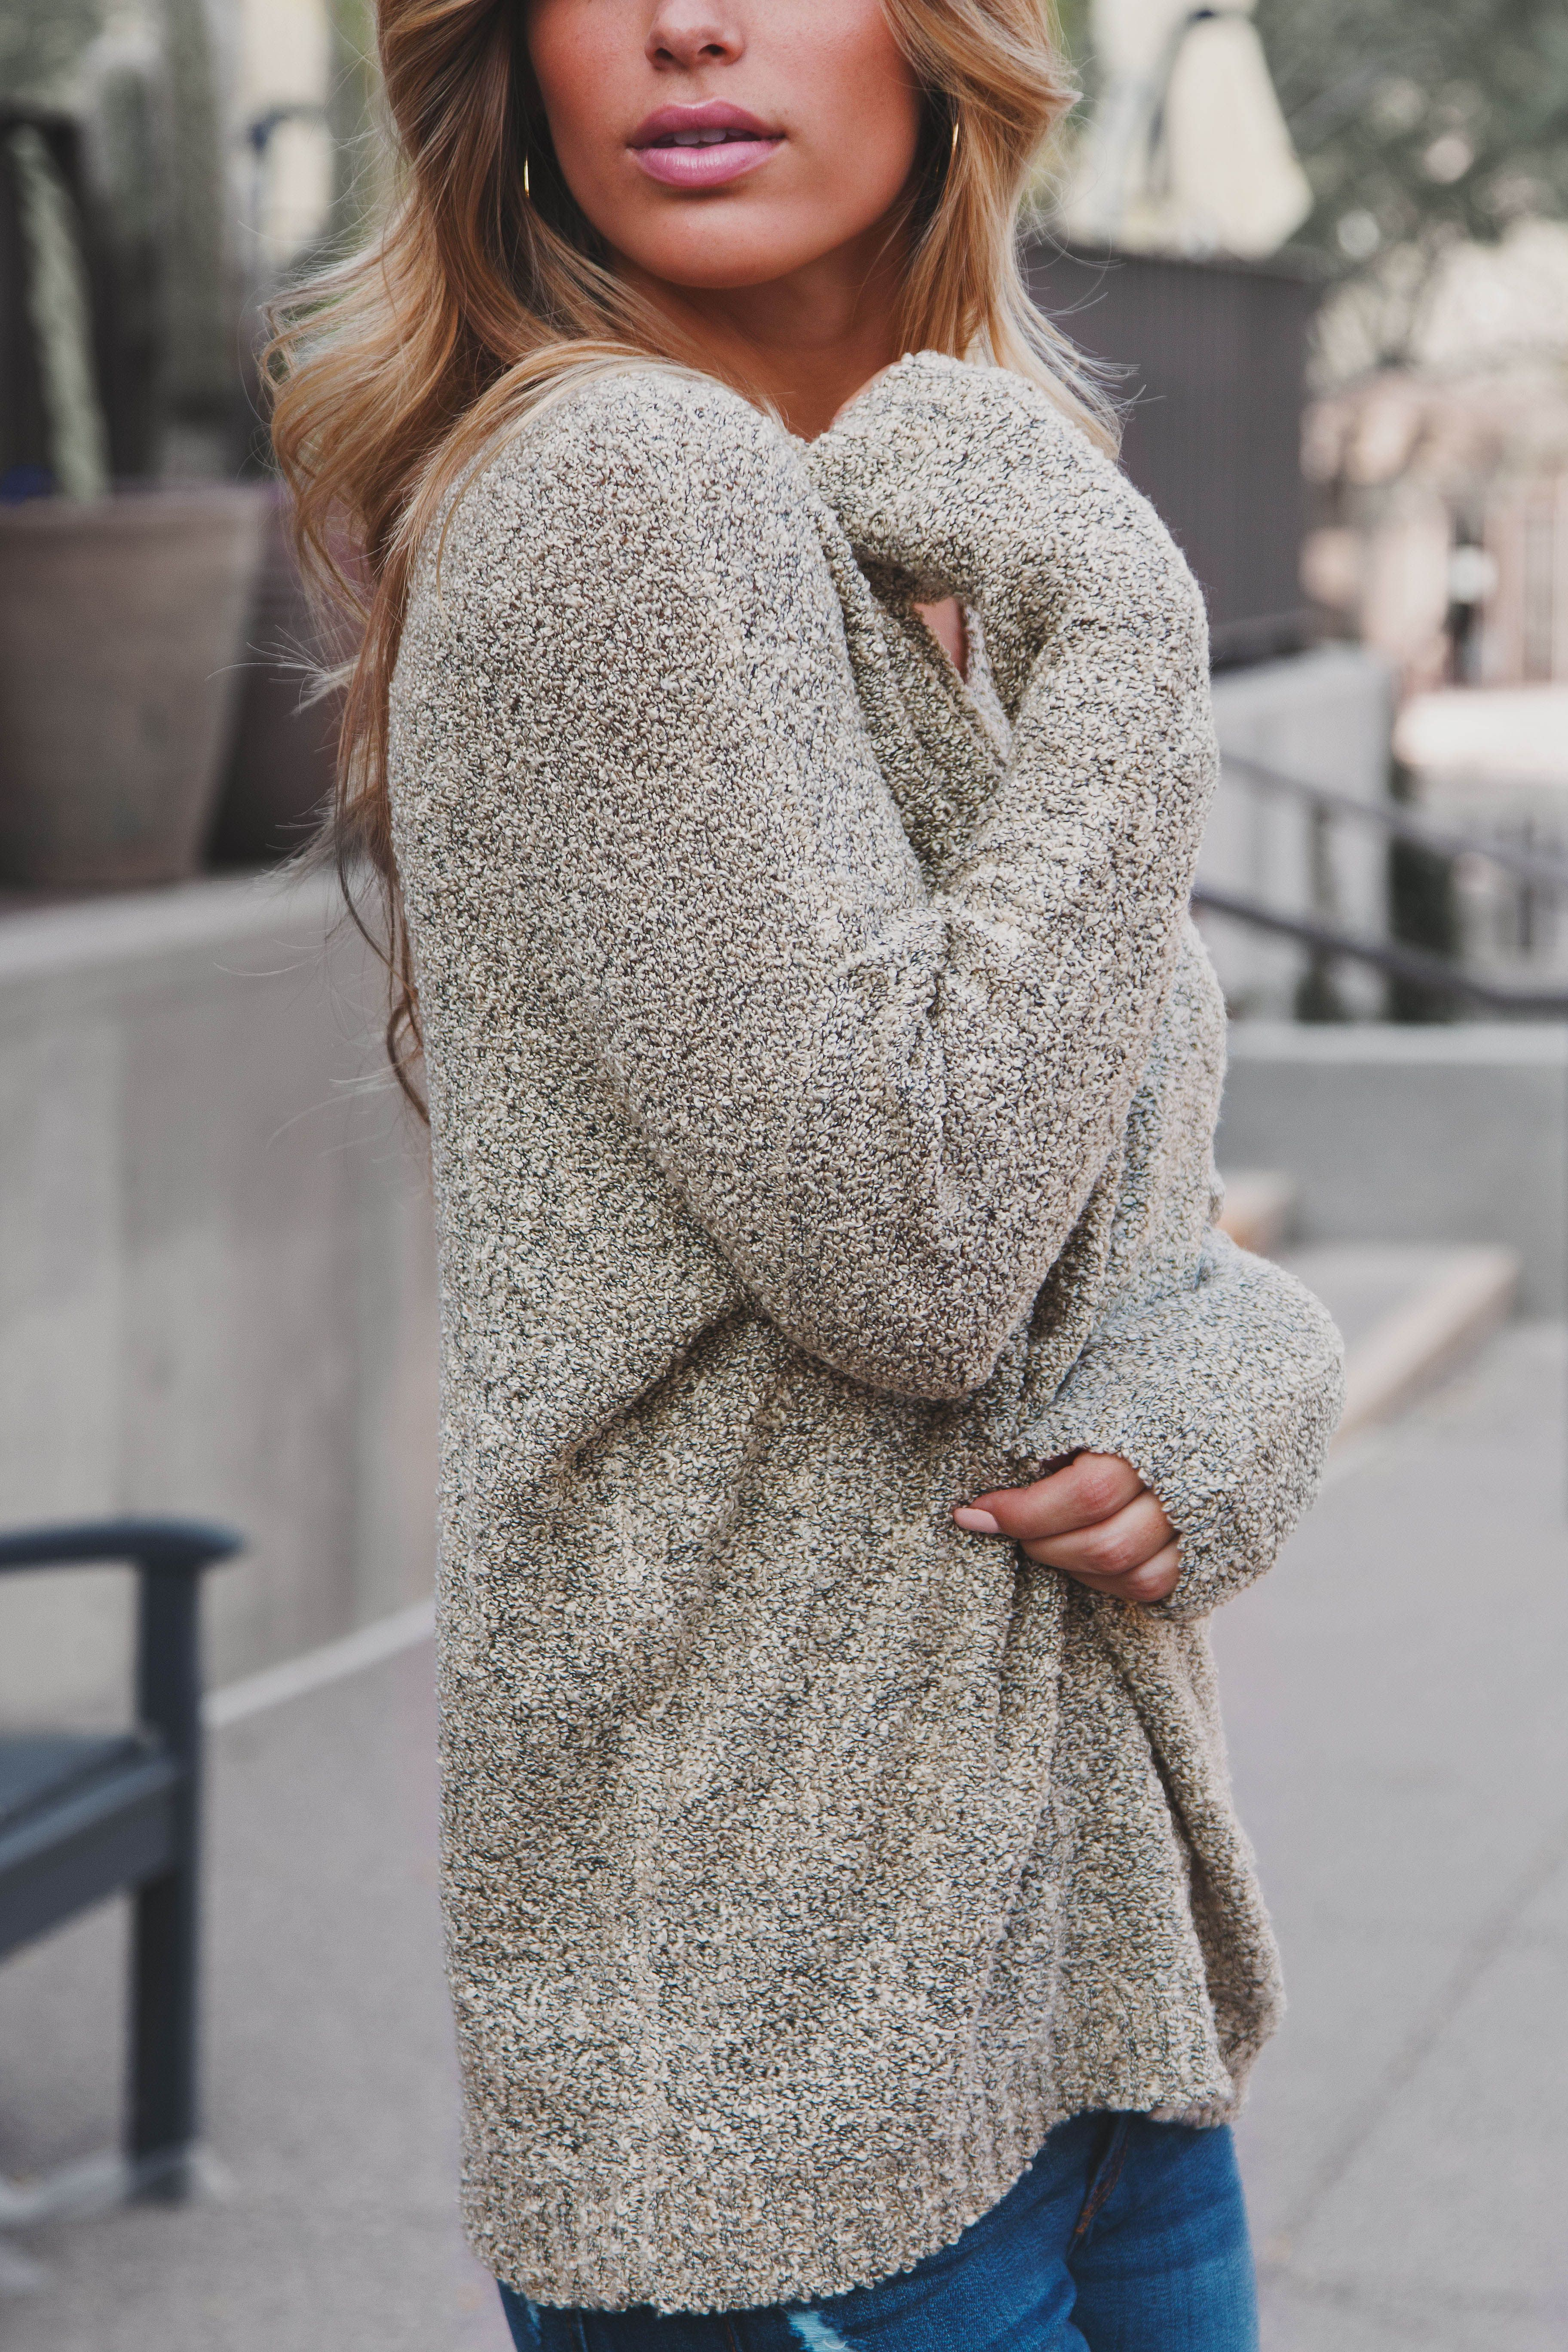 Pin by bailey lee on winter fashion pinterest winter fashion